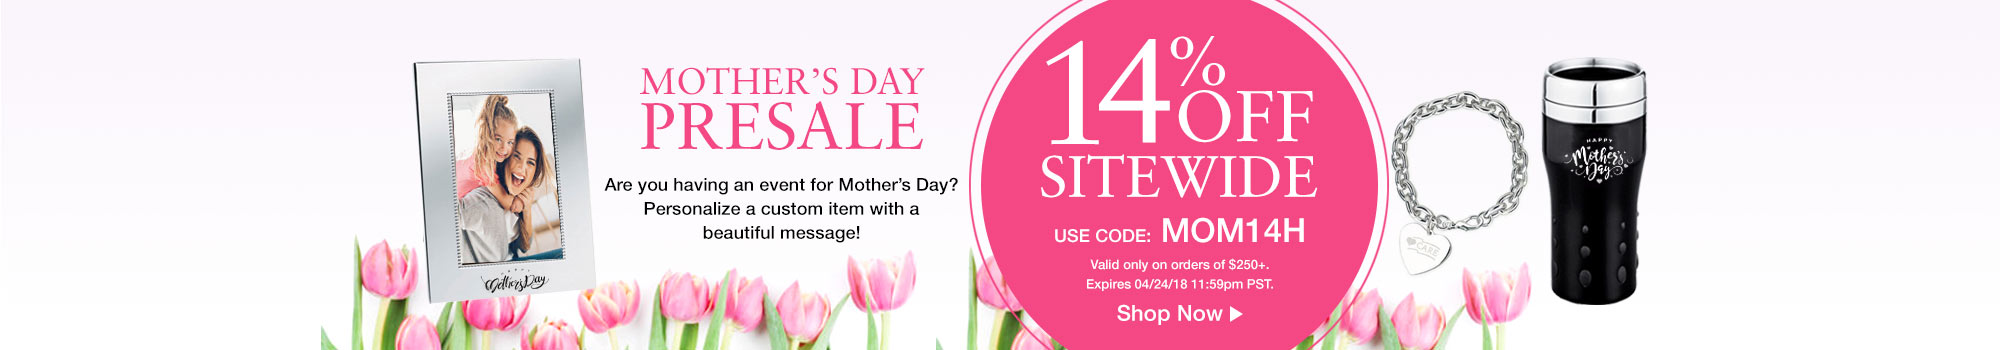 mothers-day-presale